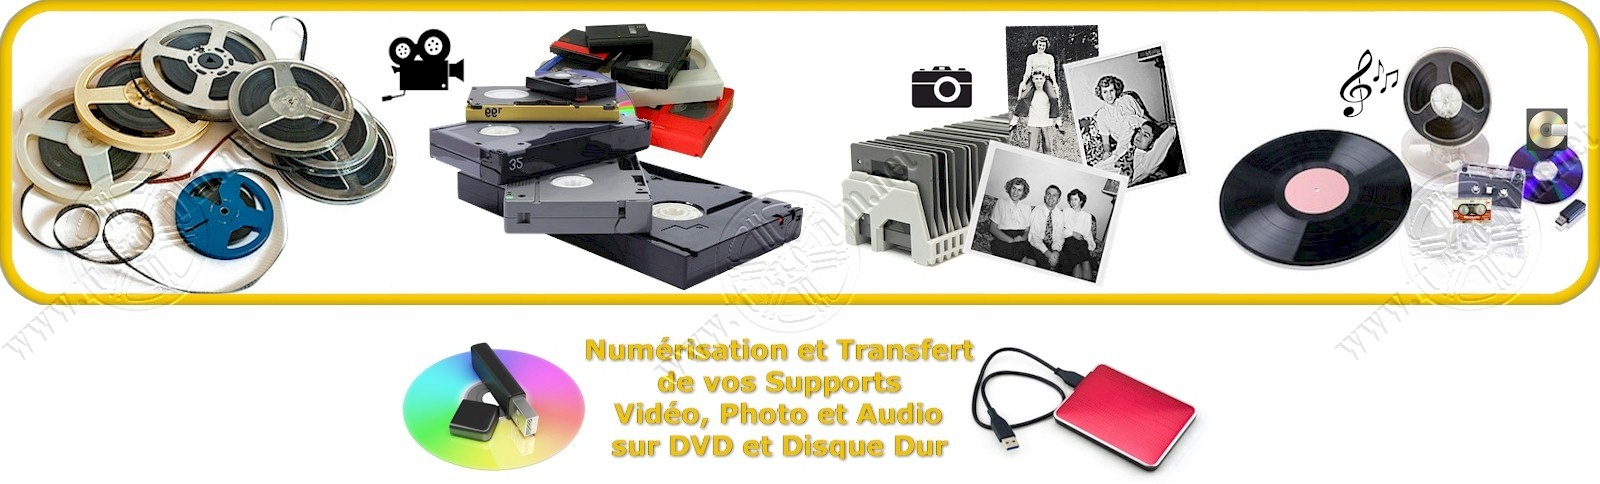 transfert de Film 8mm, Super8, cassette et Diapositive sur DVD